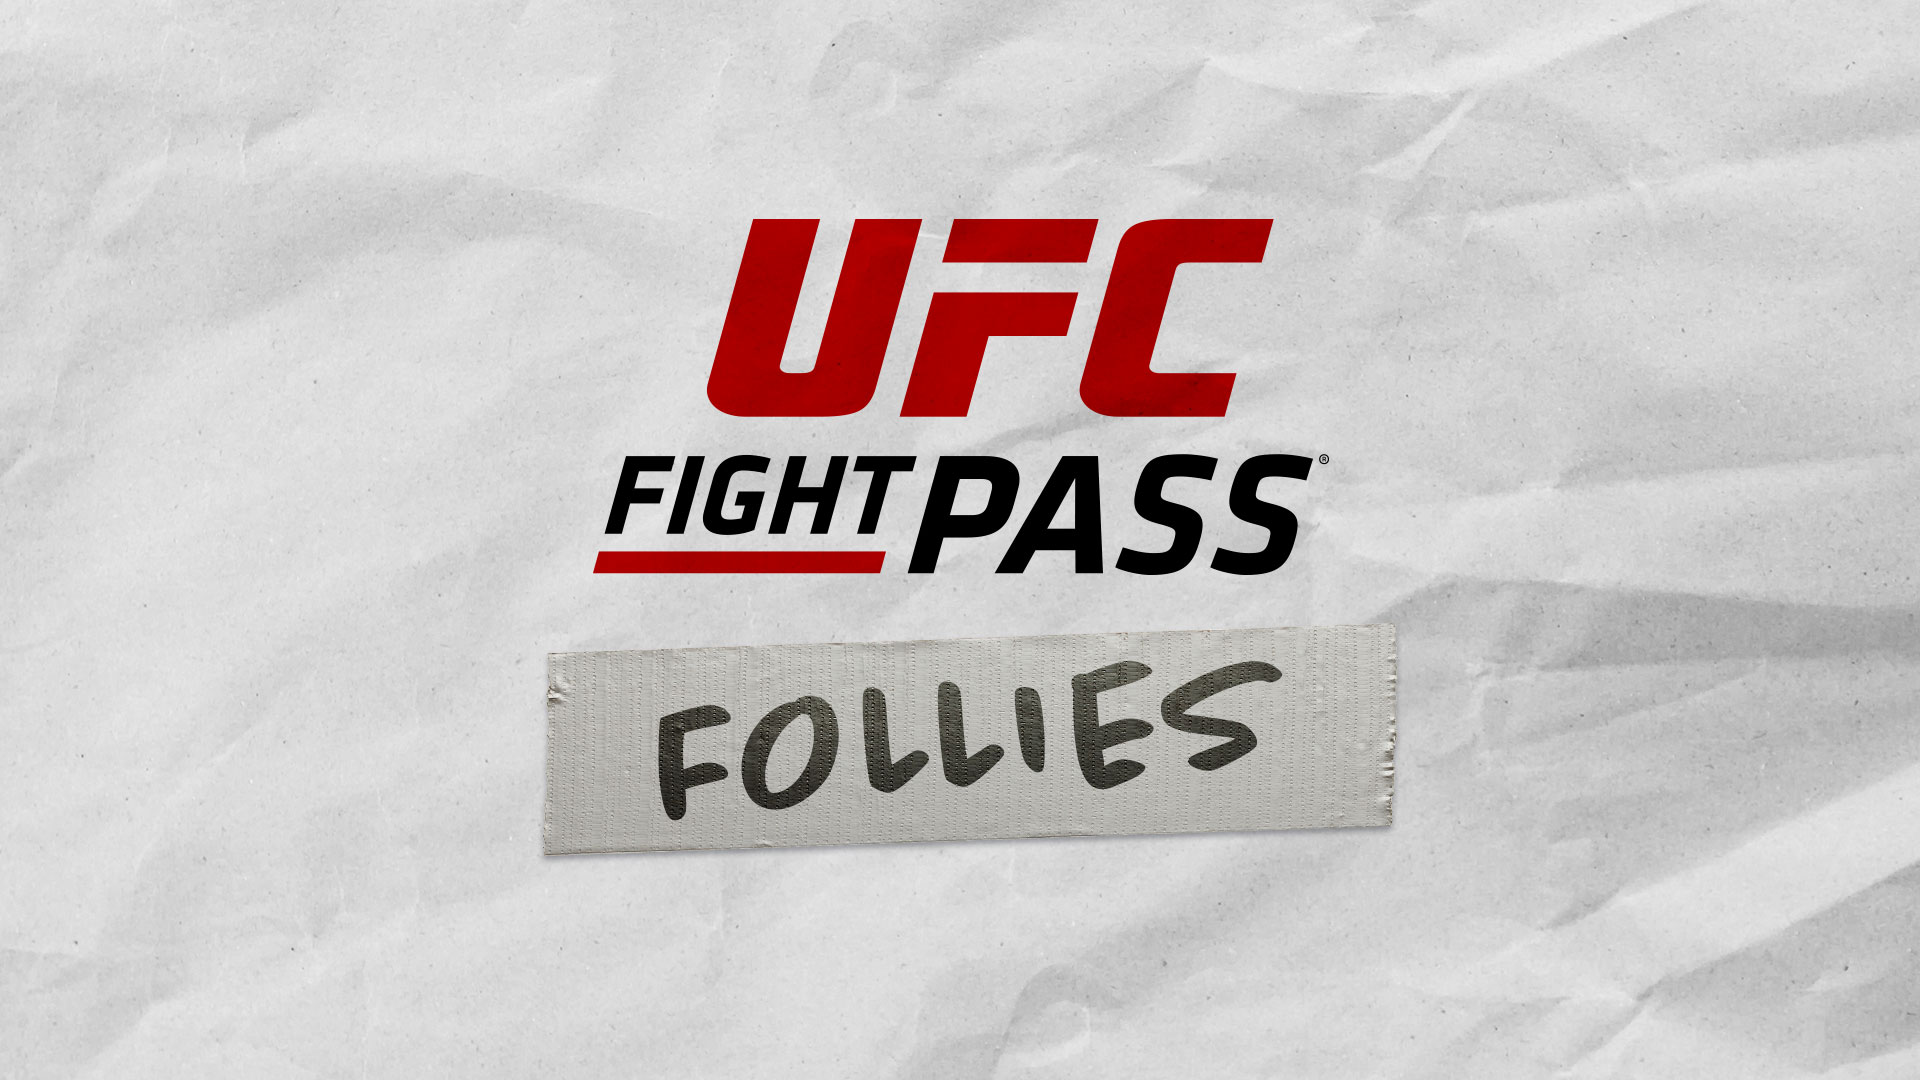 UFC Fight Pass Follies